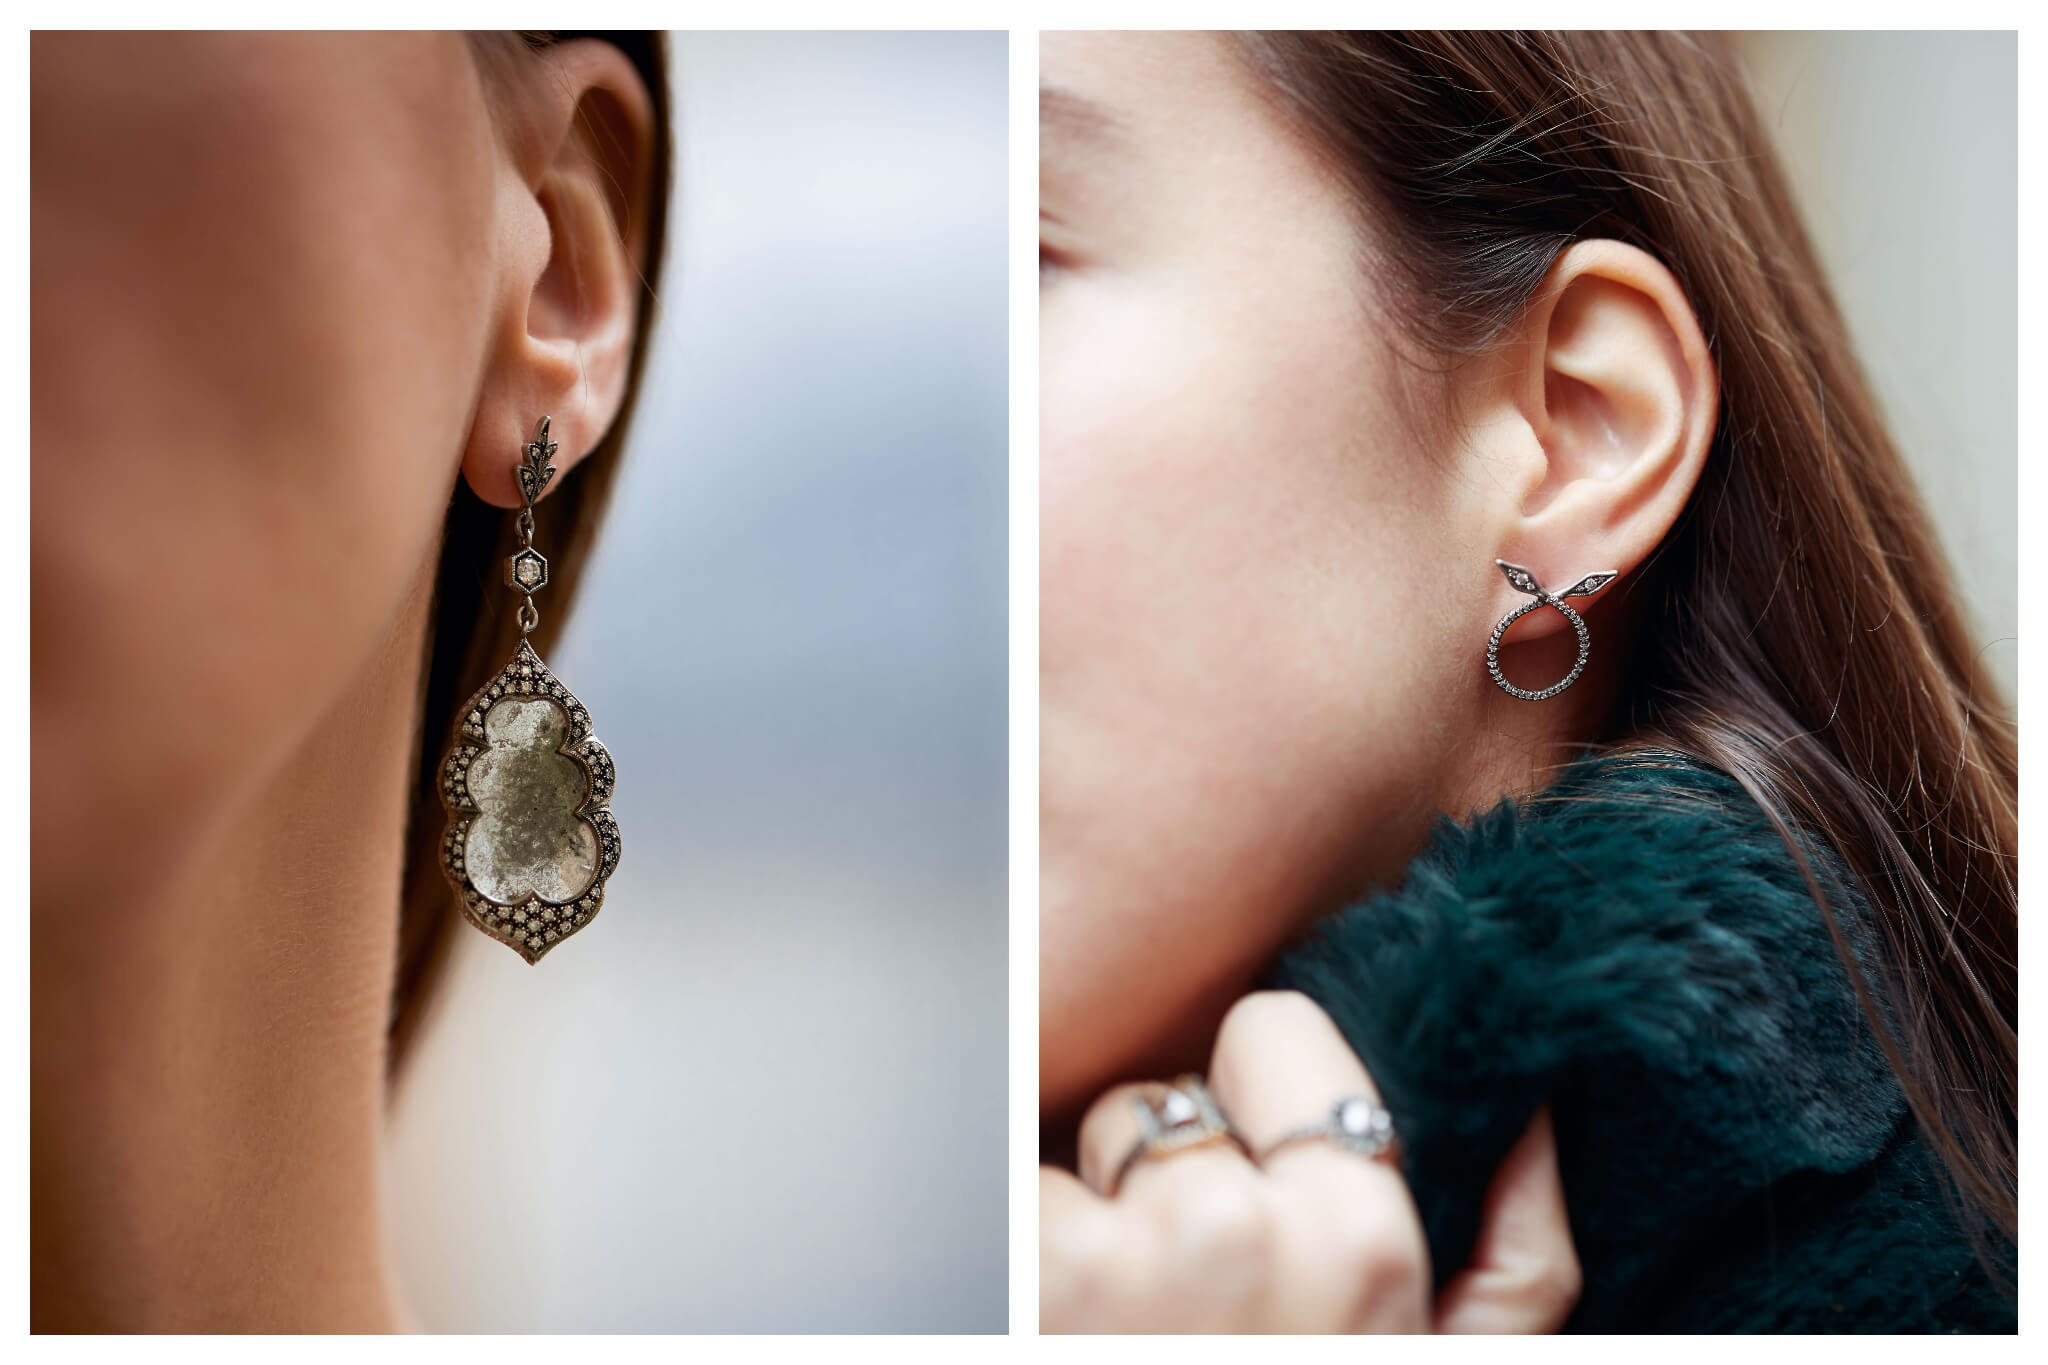 On left: An intricate, metallic drop earring features a textured, ground-glass center surrounded by a diamond detailing. On right: A petit hoop earring with tapered ends that criss-cross, pointing up and out. Both pieces were curated by White Bird, a Parisian jewelry shop that works with independent designers to create international collections.